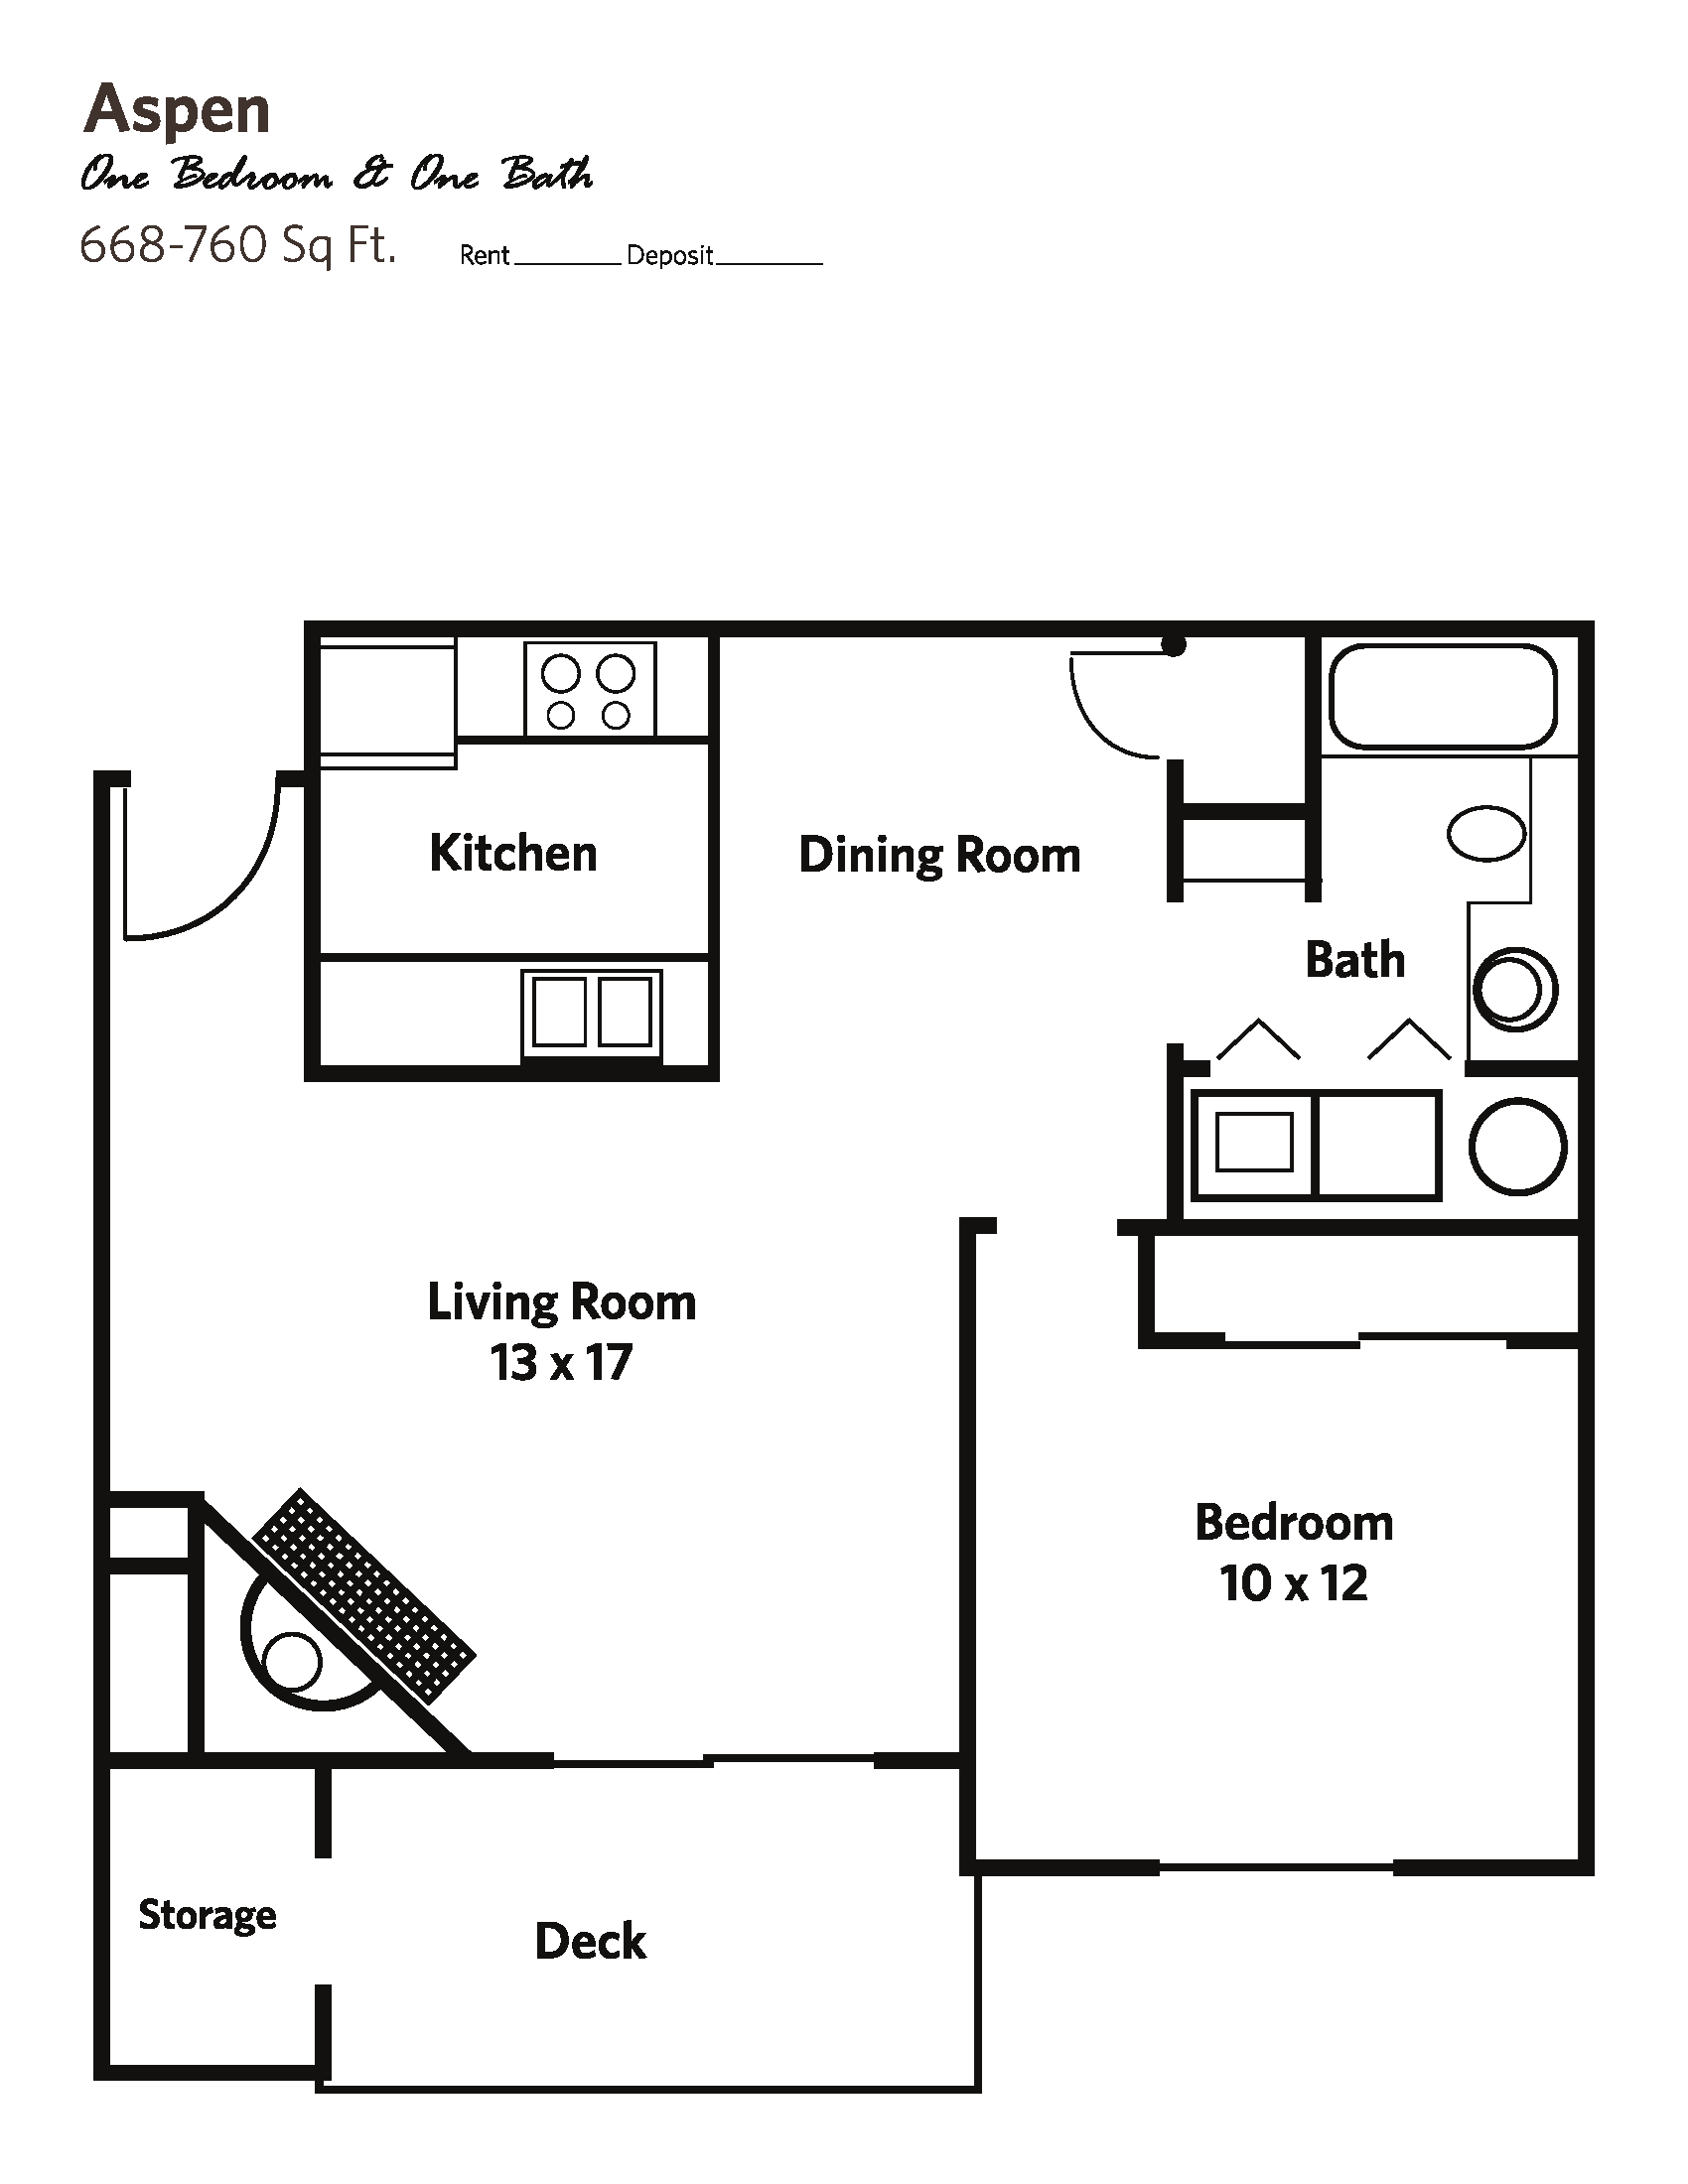 ASPEN Medium (1 bed + 1 bath) - Apartments Floor Plan 2